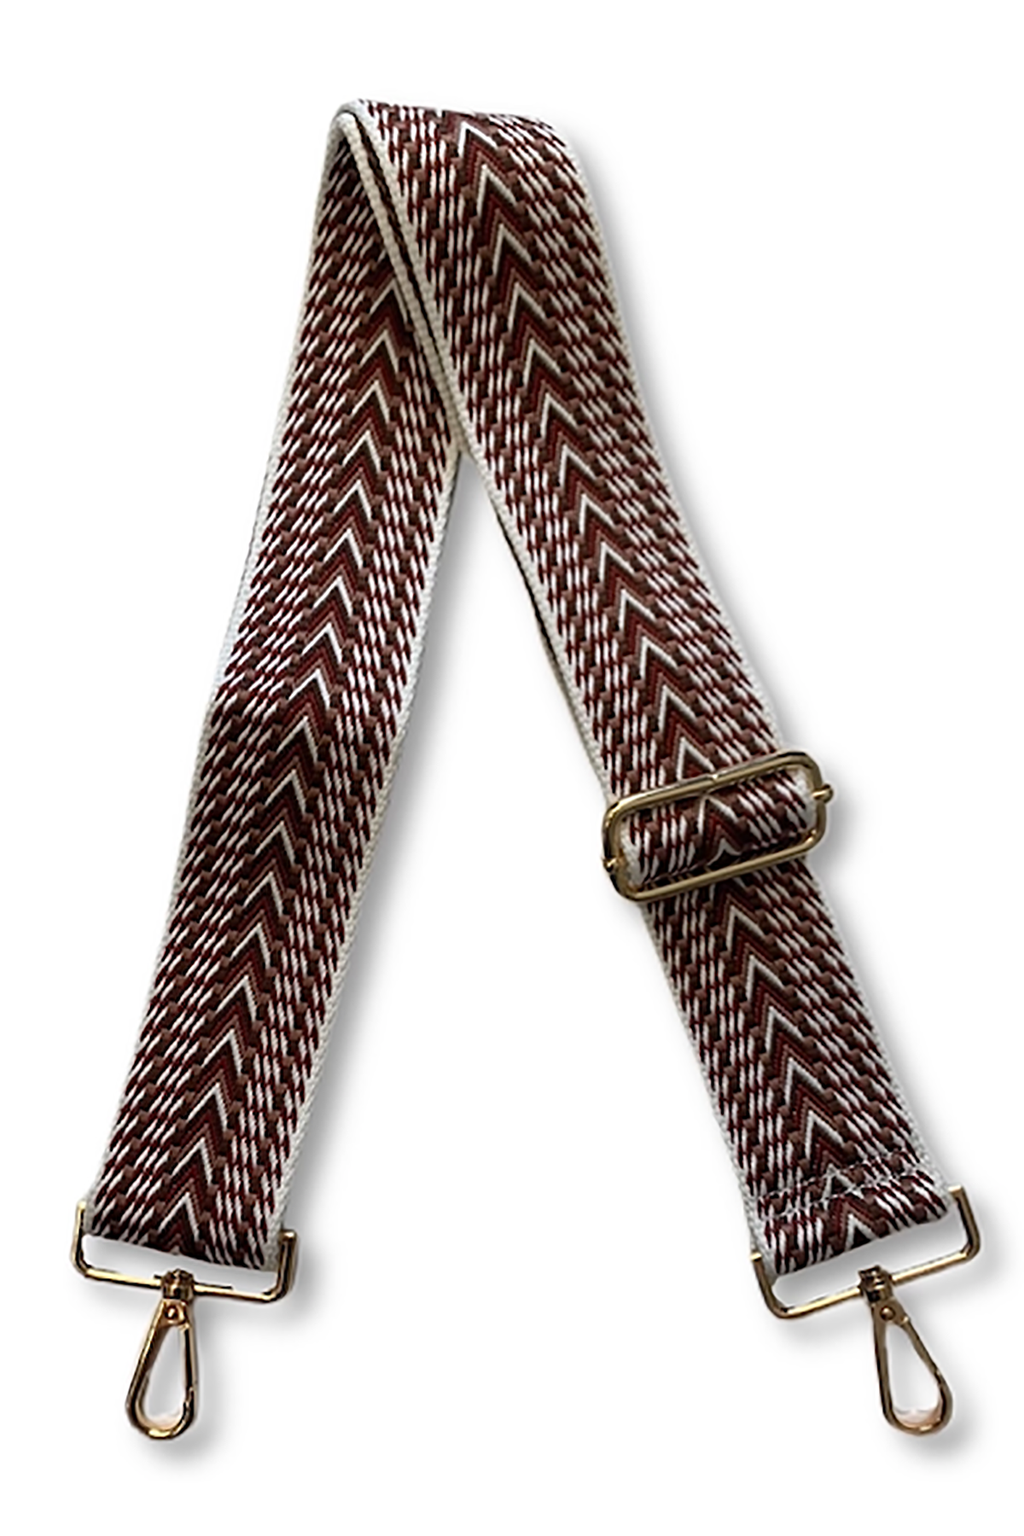 Embroidered Woven Bag Strap